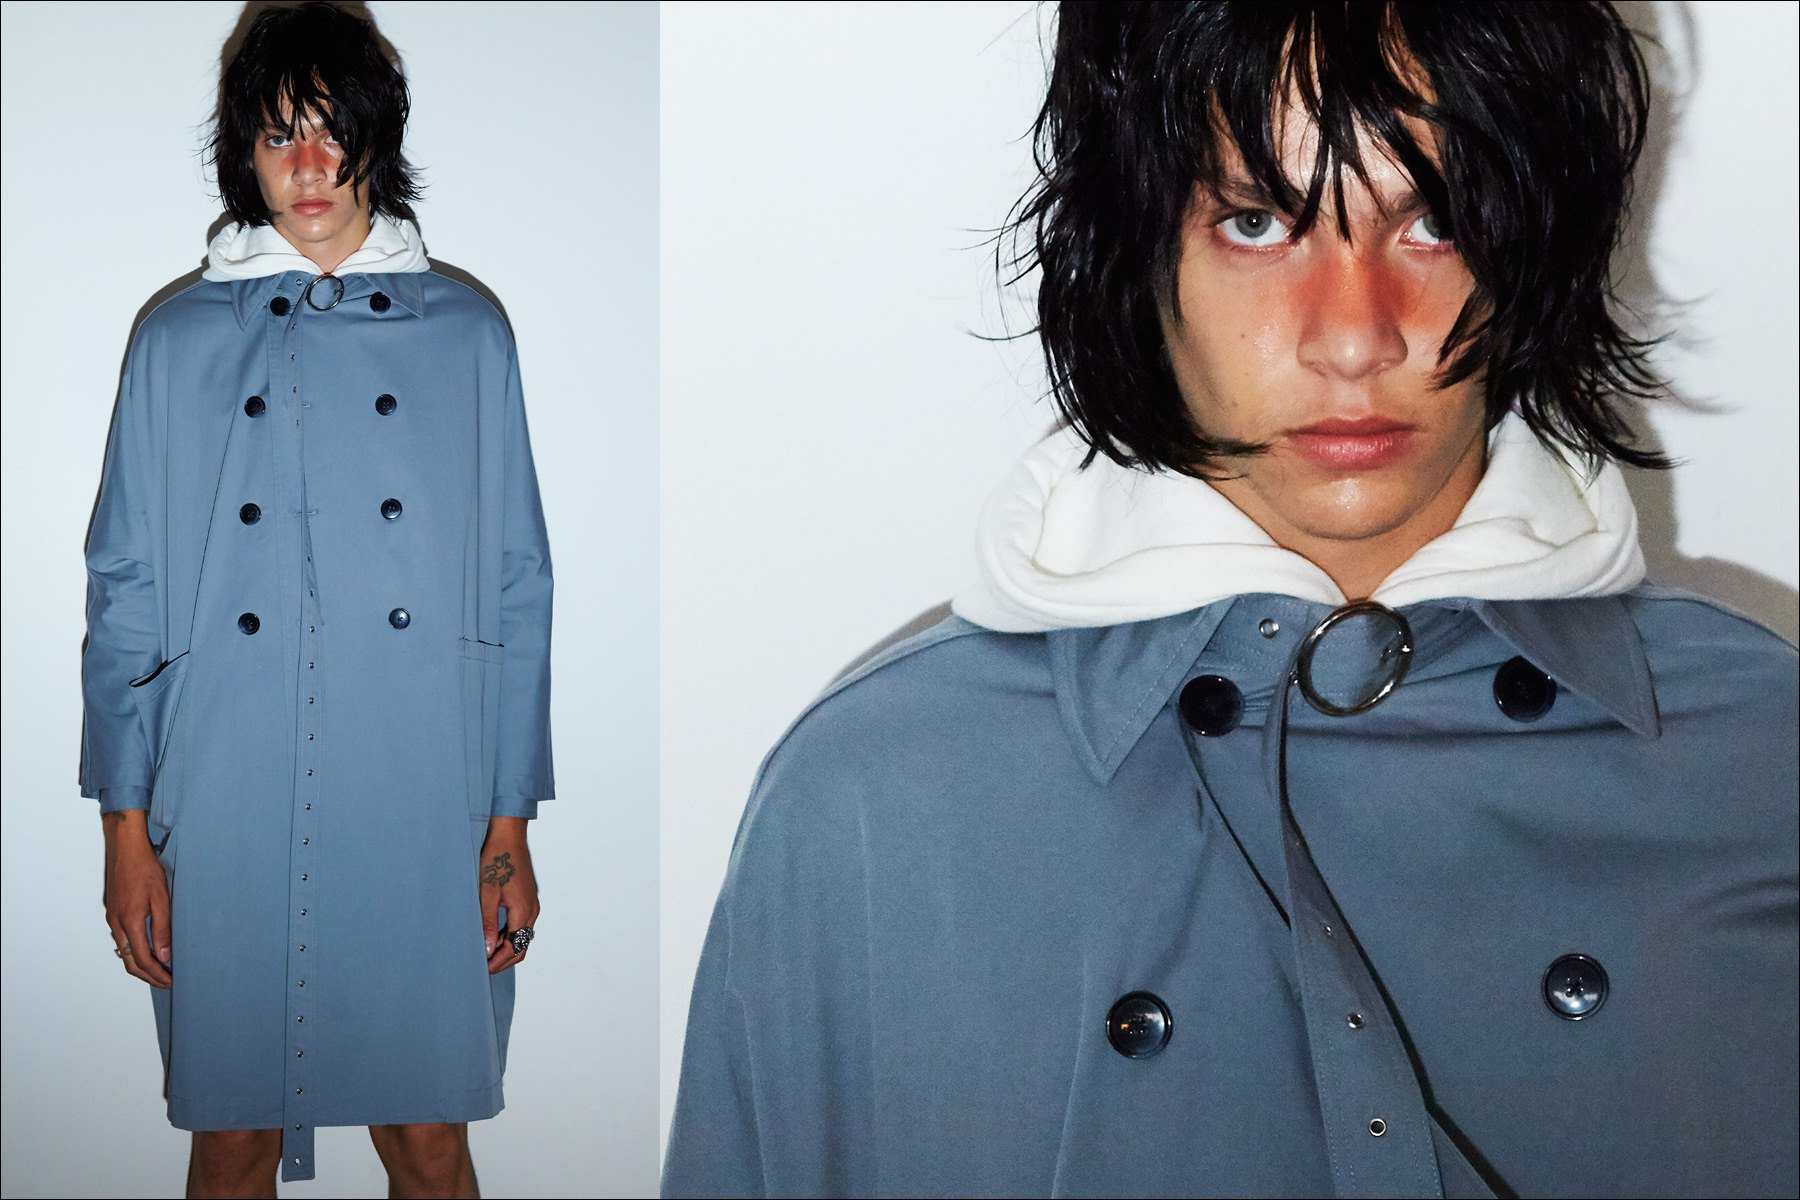 A male model poses in a trench coat, backstage at Private Policy S/S18. Photos by Alexander Thompson for Ponyboy magazine NY.